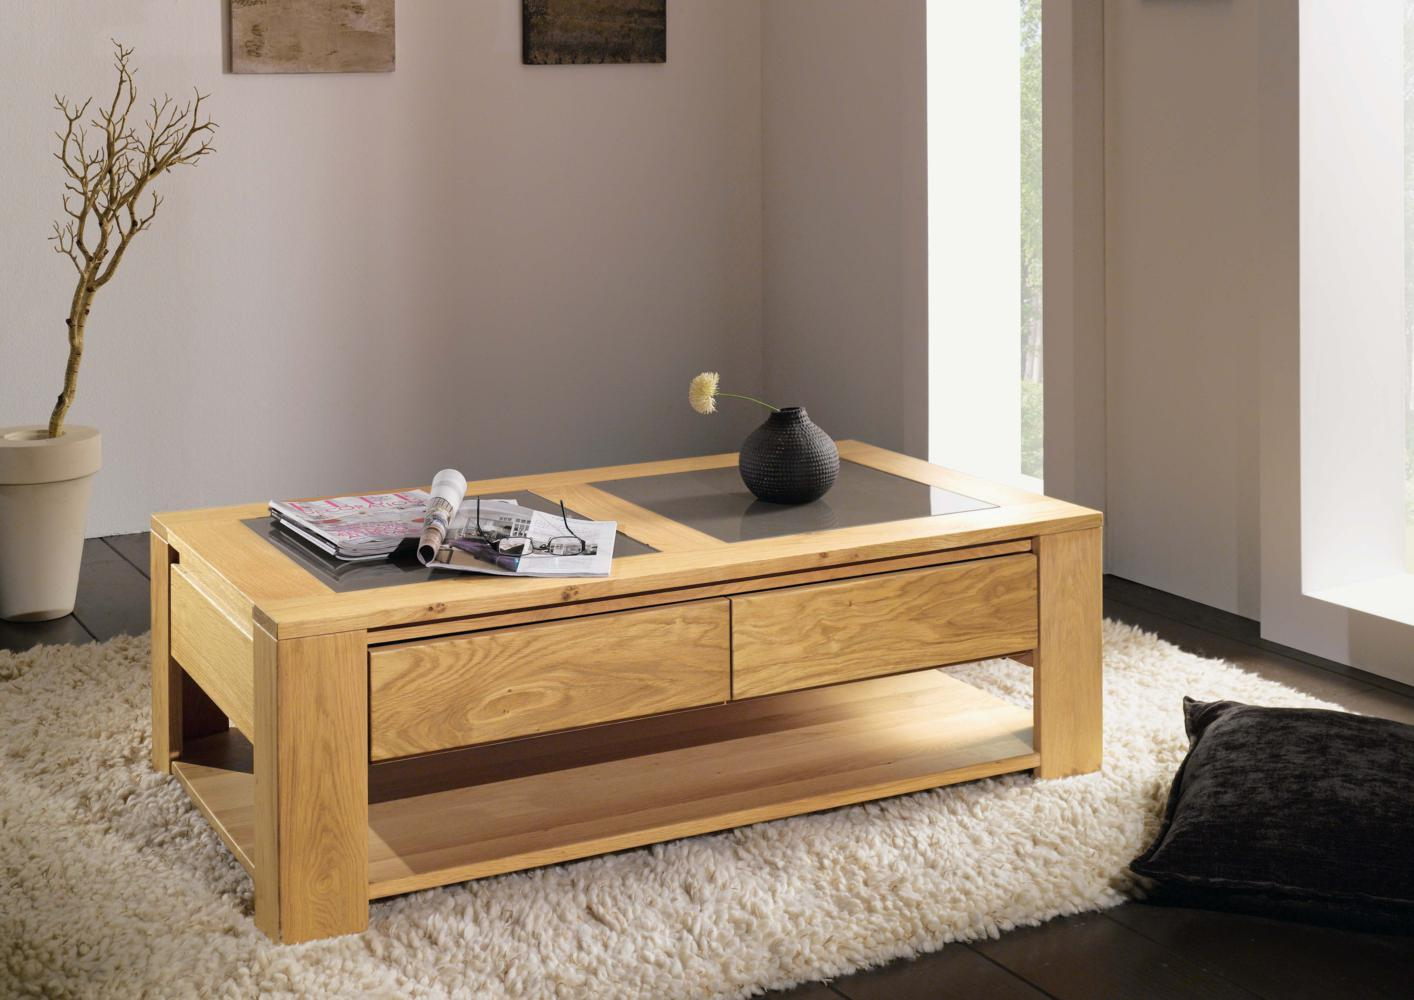 Table basse chene massif - Table basse chene clair massif ...